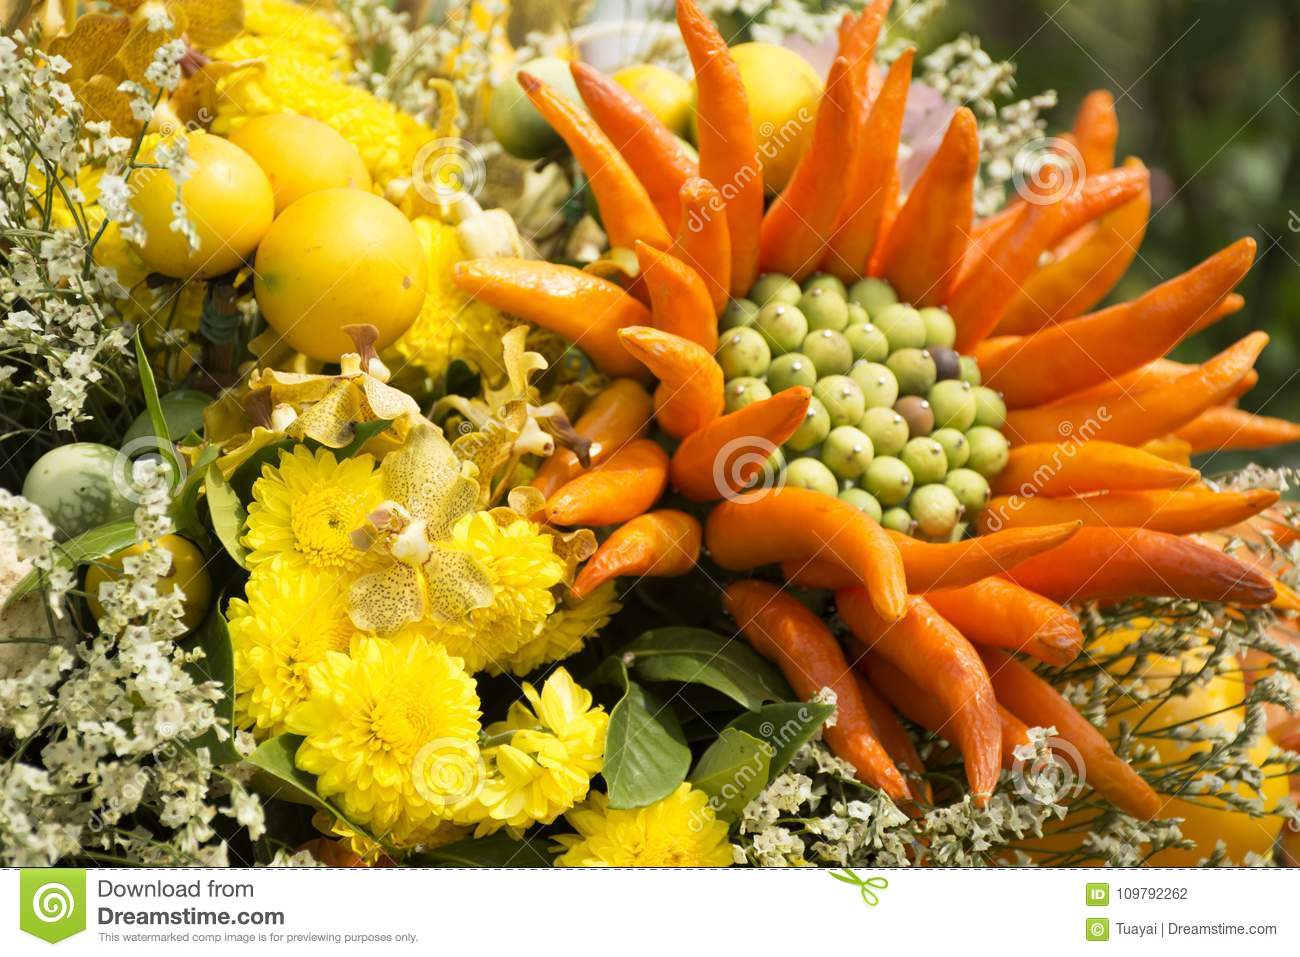 Decoration Made From Fruits And Vegetables And Flowers For Show ...